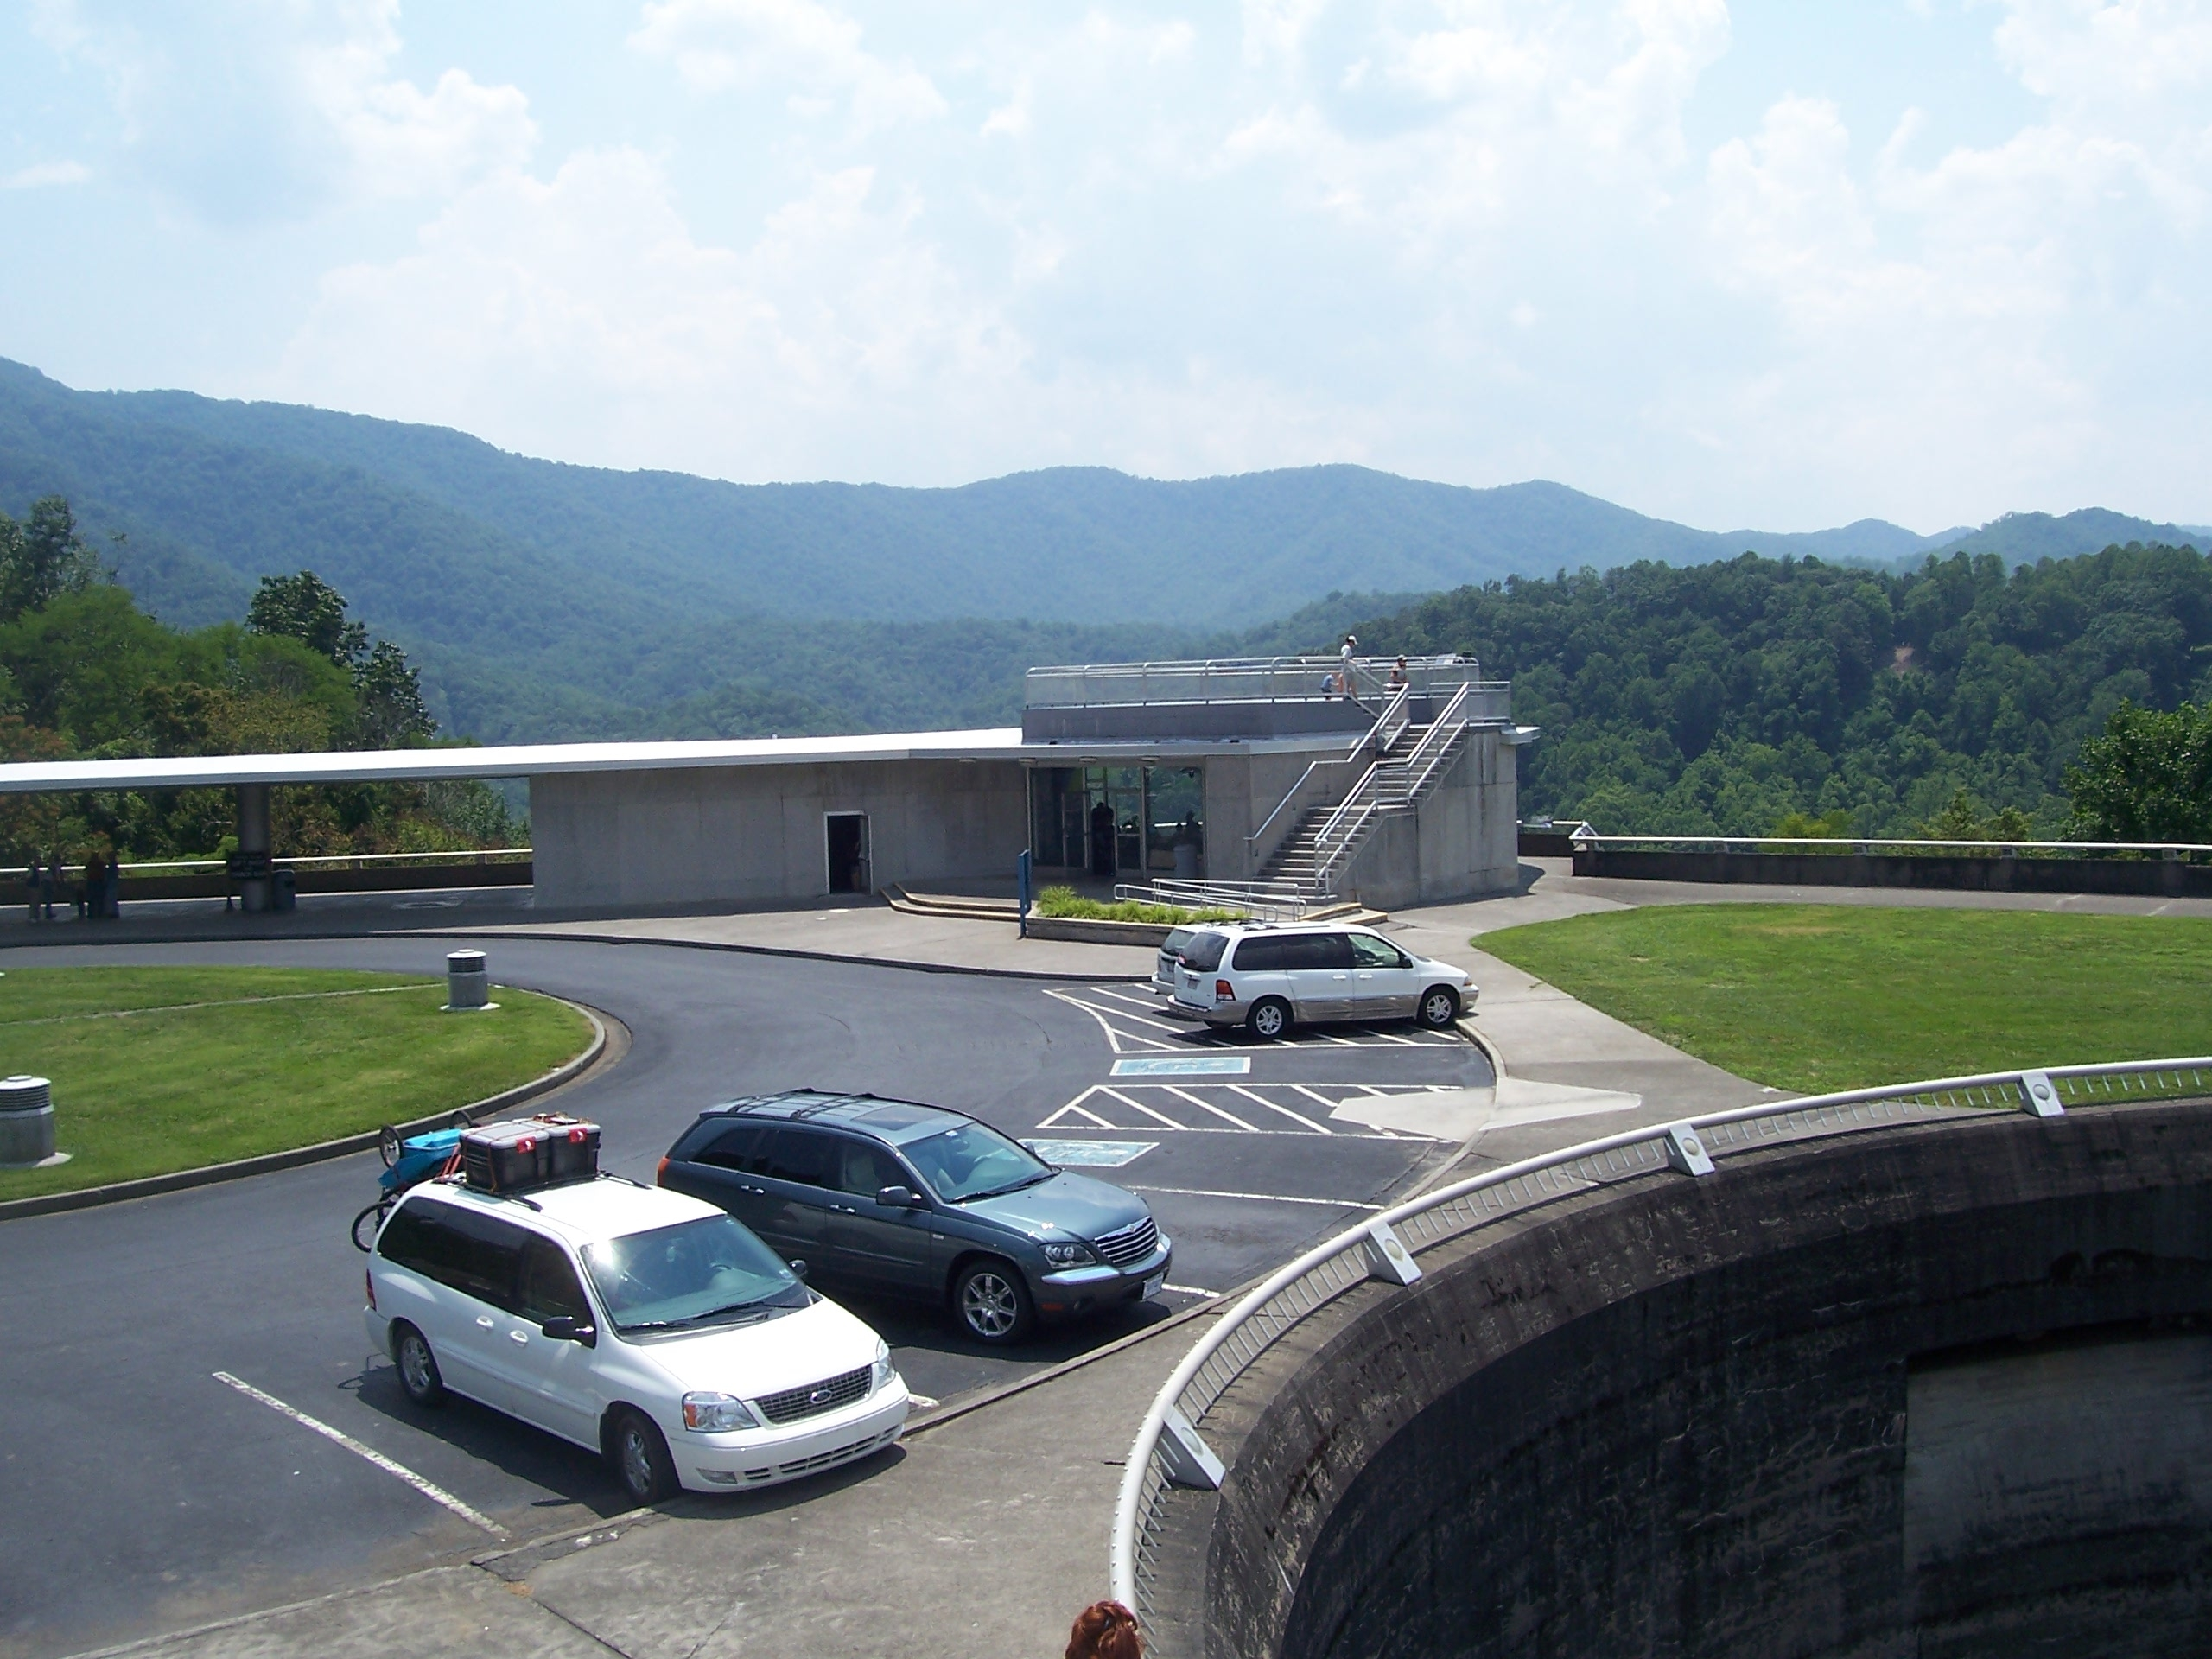 Visitors center and parking area.